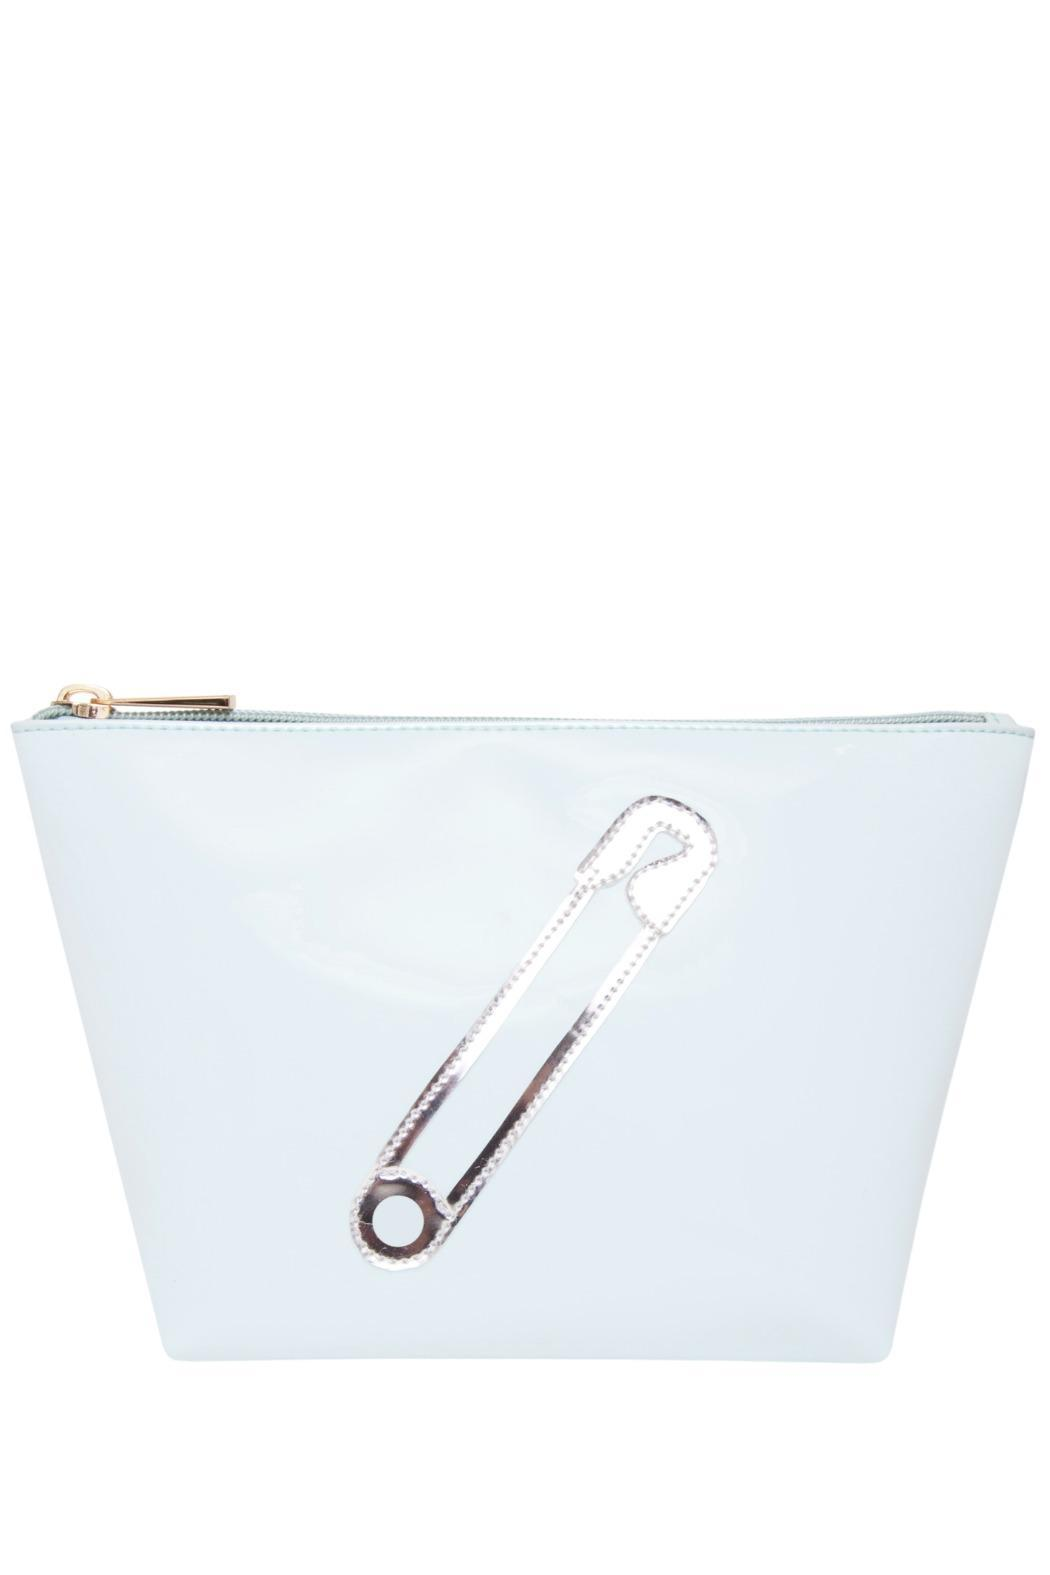 Lolo Bags Safety Pin Case - Front Full Image